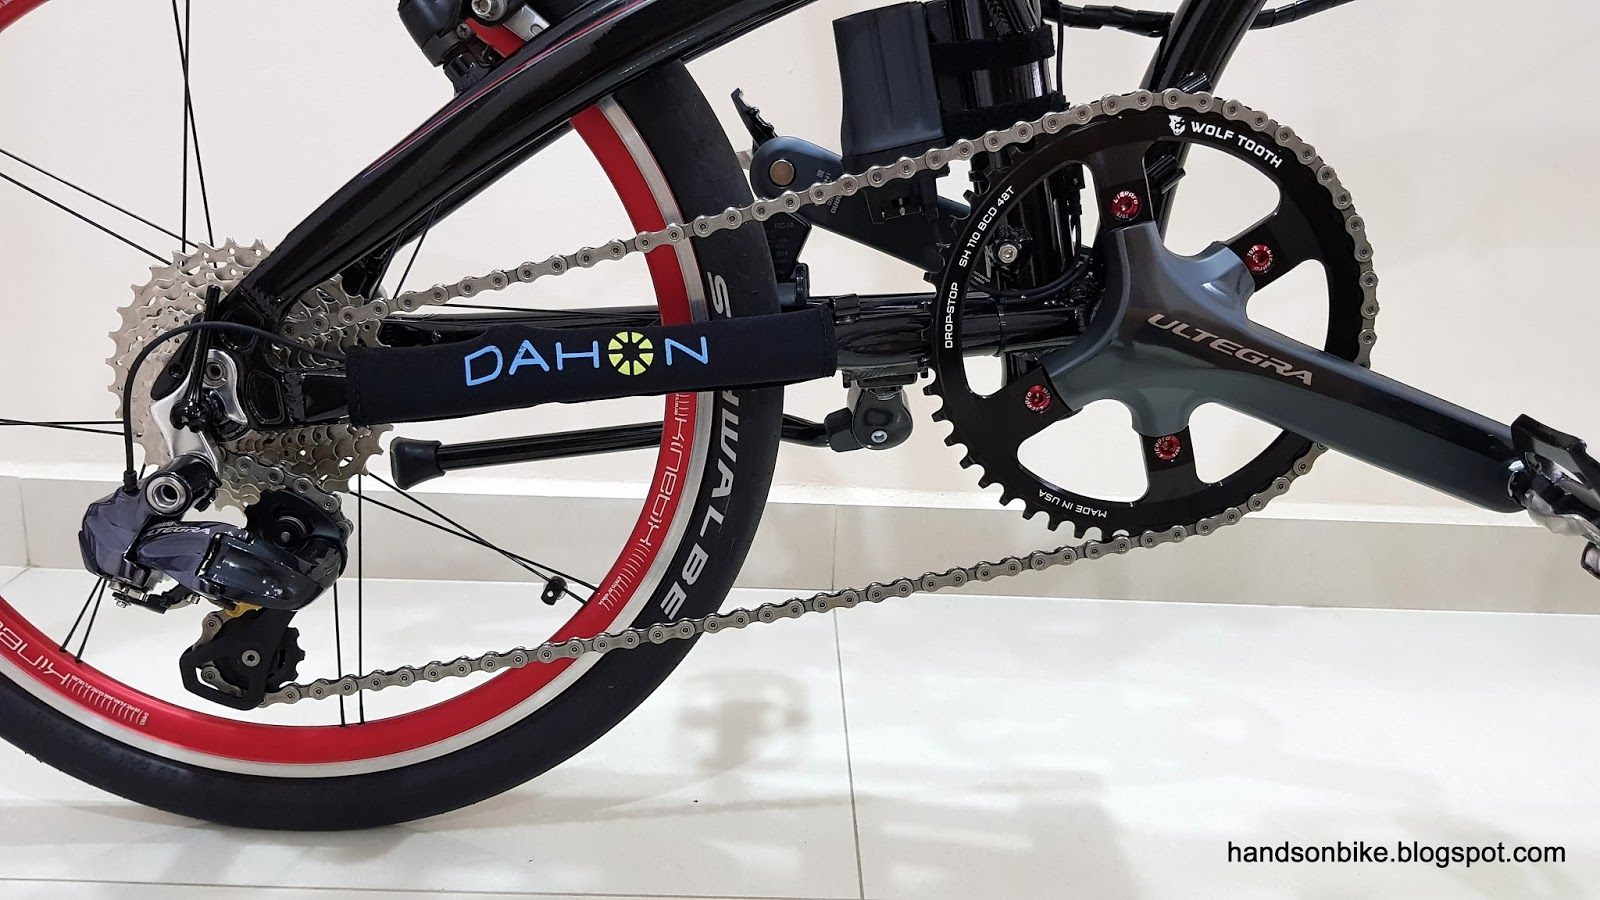 Hands On Bike Dahon Muex 1x11 Drivetrain Installation Mini Group Set 11speed Slx Sprocket 46t Chain Path When In The Rear Top Gear Derailleur Cage Is Slightly Extended To Maintain Some Tension Minimize Slap